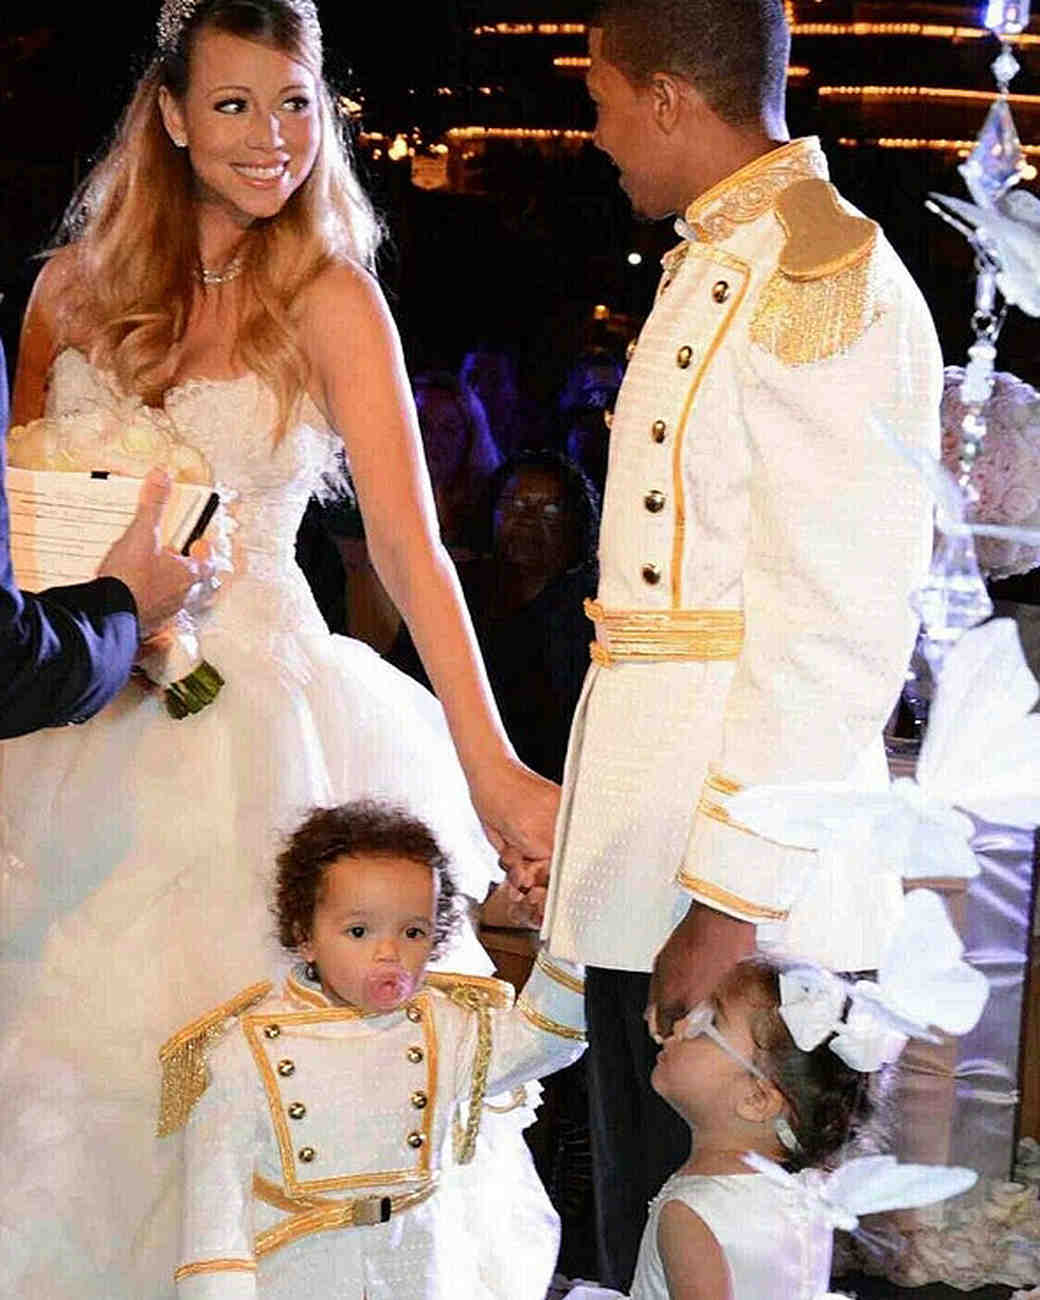 monroe-moroccan-mariah-carey-nick-cannon-celebrity-kids-weddings.jpg